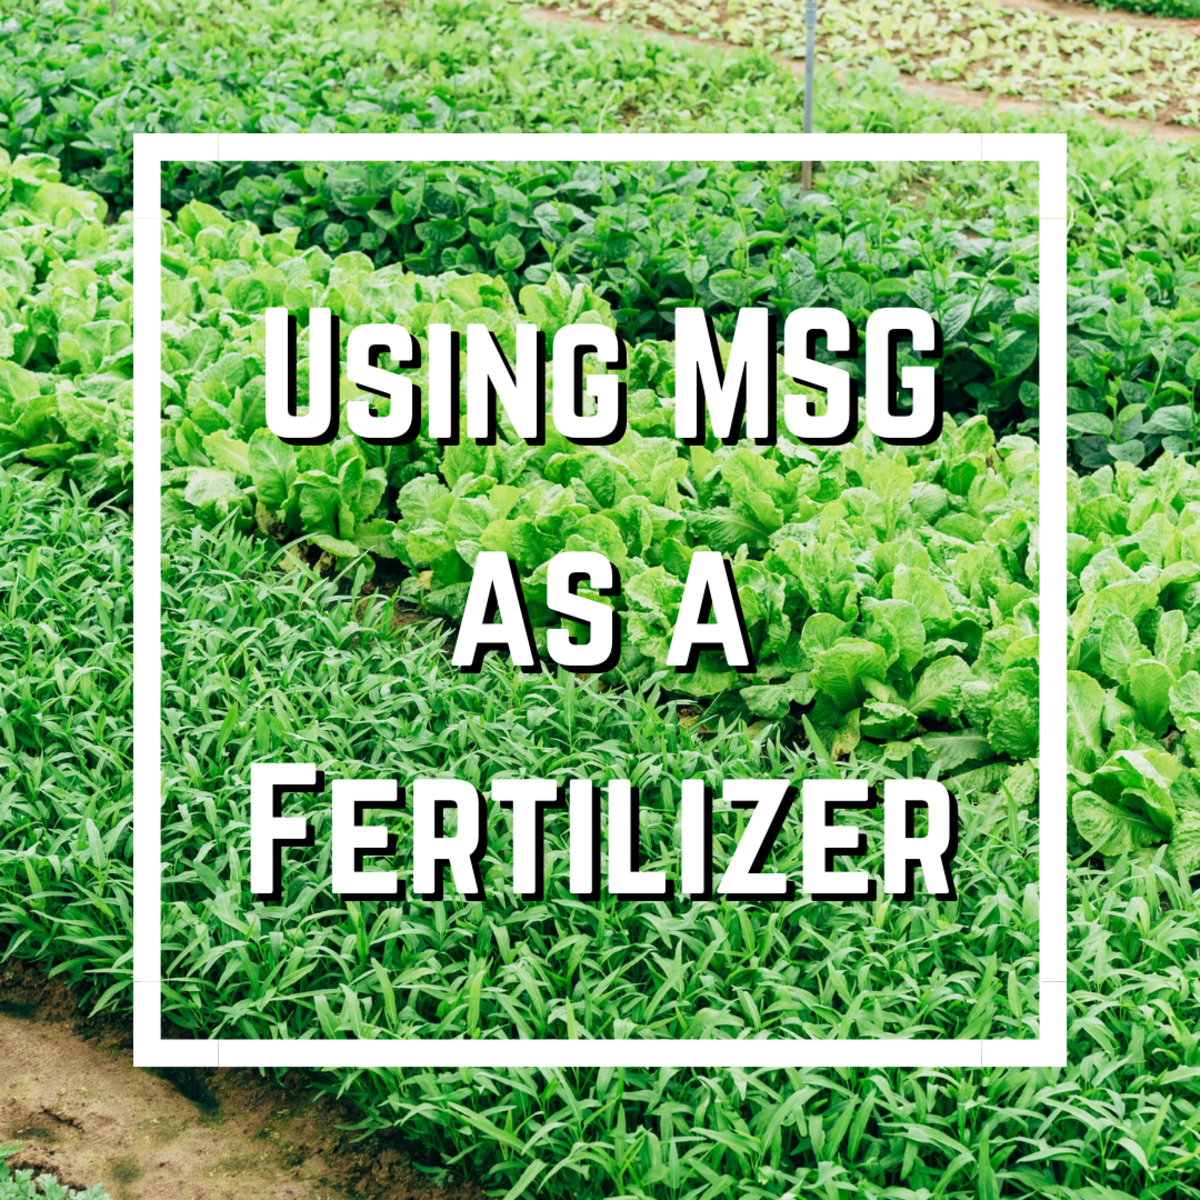 This article reviews all you need to know about MSG as a plant fertilizer, including its benefits, downsides, and preparation. You'll also find extra info on MSG-related health concerns.